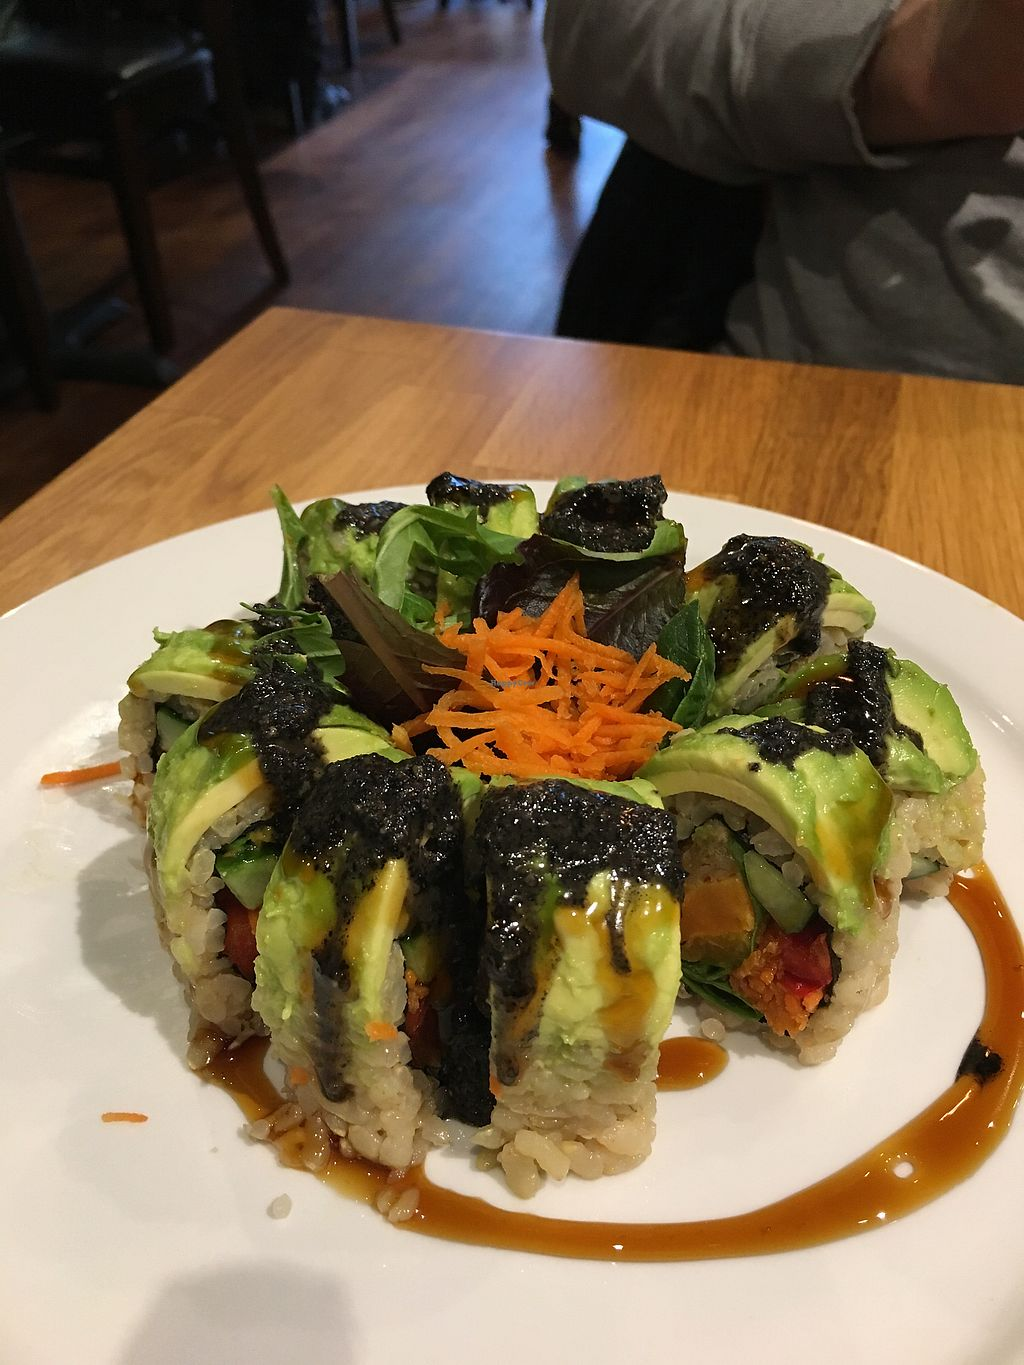 """Photo of Shizenya - Downtown  by <a href=""""/members/profile/Siup"""">Siup</a> <br/>Geisha rolls  <br/> March 21, 2018  - <a href='/contact/abuse/image/87440/373539'>Report</a>"""